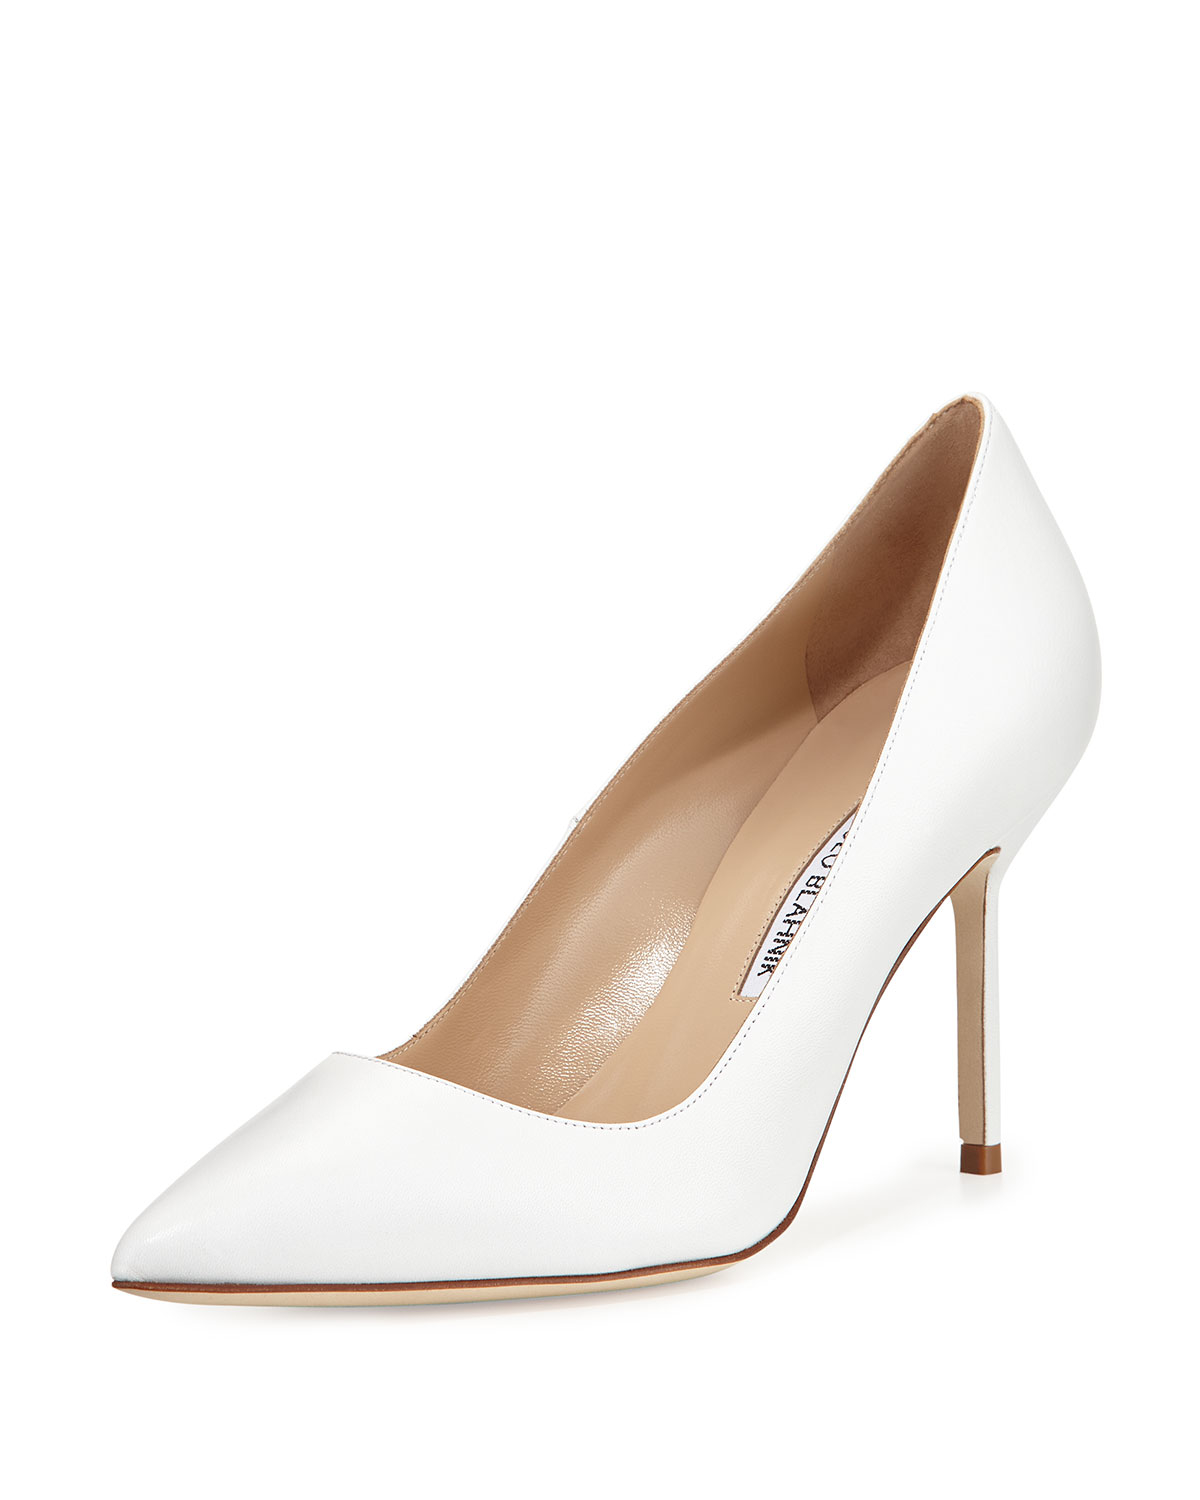 Manolo blahnik bb 90mm pump in white lyst for Shoes by manolo blahnik